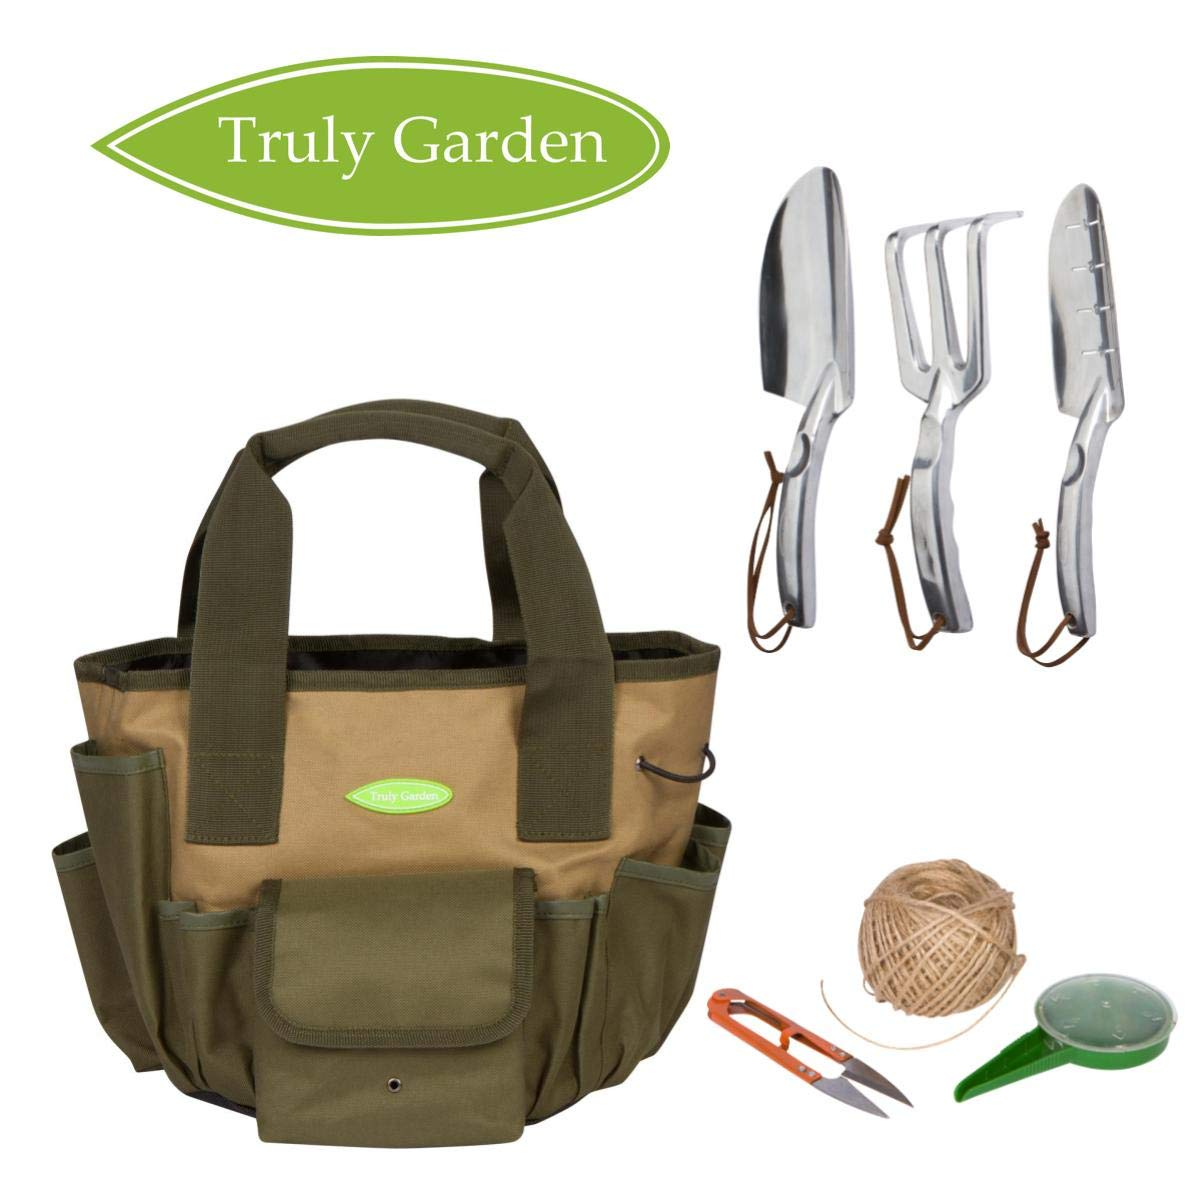 Truly Garden 2 Garden Tote and Gallon Bucket Organizer with Garden Tools. This makes the perfect Gardening Gift. It includes twine, scissors, seed dispenser, and 3 tough garden tools